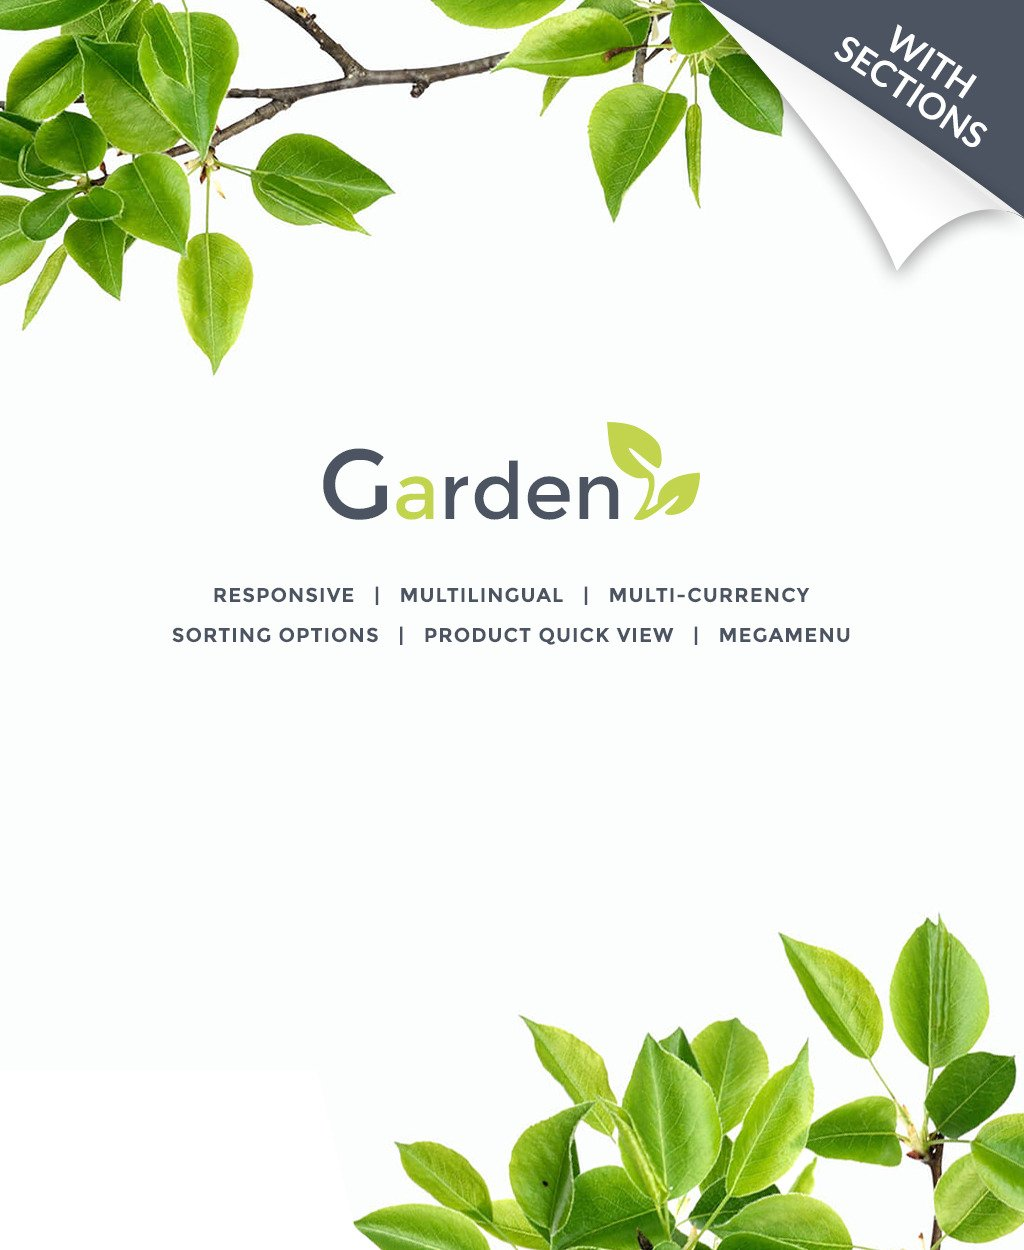 garden design template home design garden design responsive shopify theme 64035 original garden design templatehtml